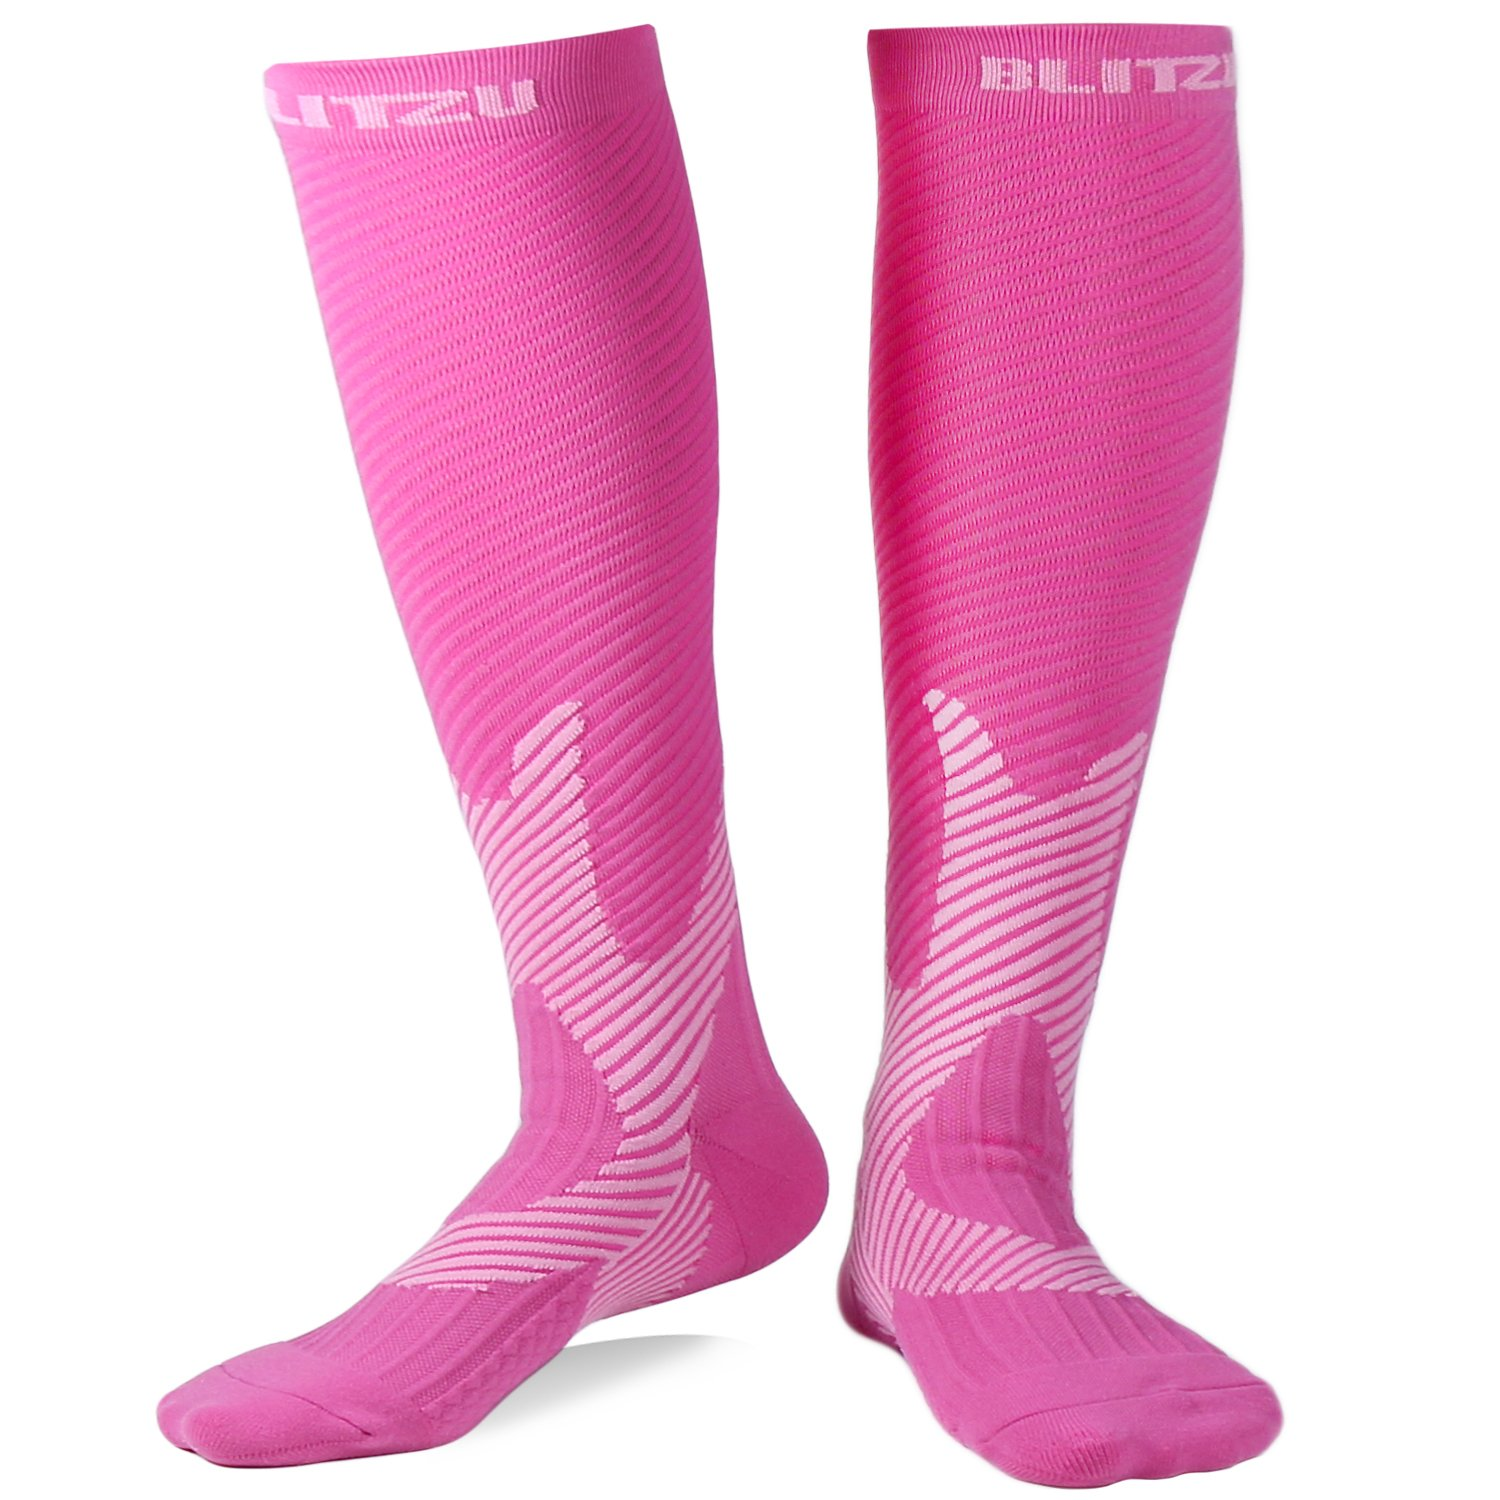 BLITZU Compression Socks 20-30mmHg for Men & Women Best Recovery Performance Stockings for Running, Medical, Athletic, Edema, Diabetic, Varicose Veins, Travel, Pregnancy, Relief Shin Splints Pink S/M